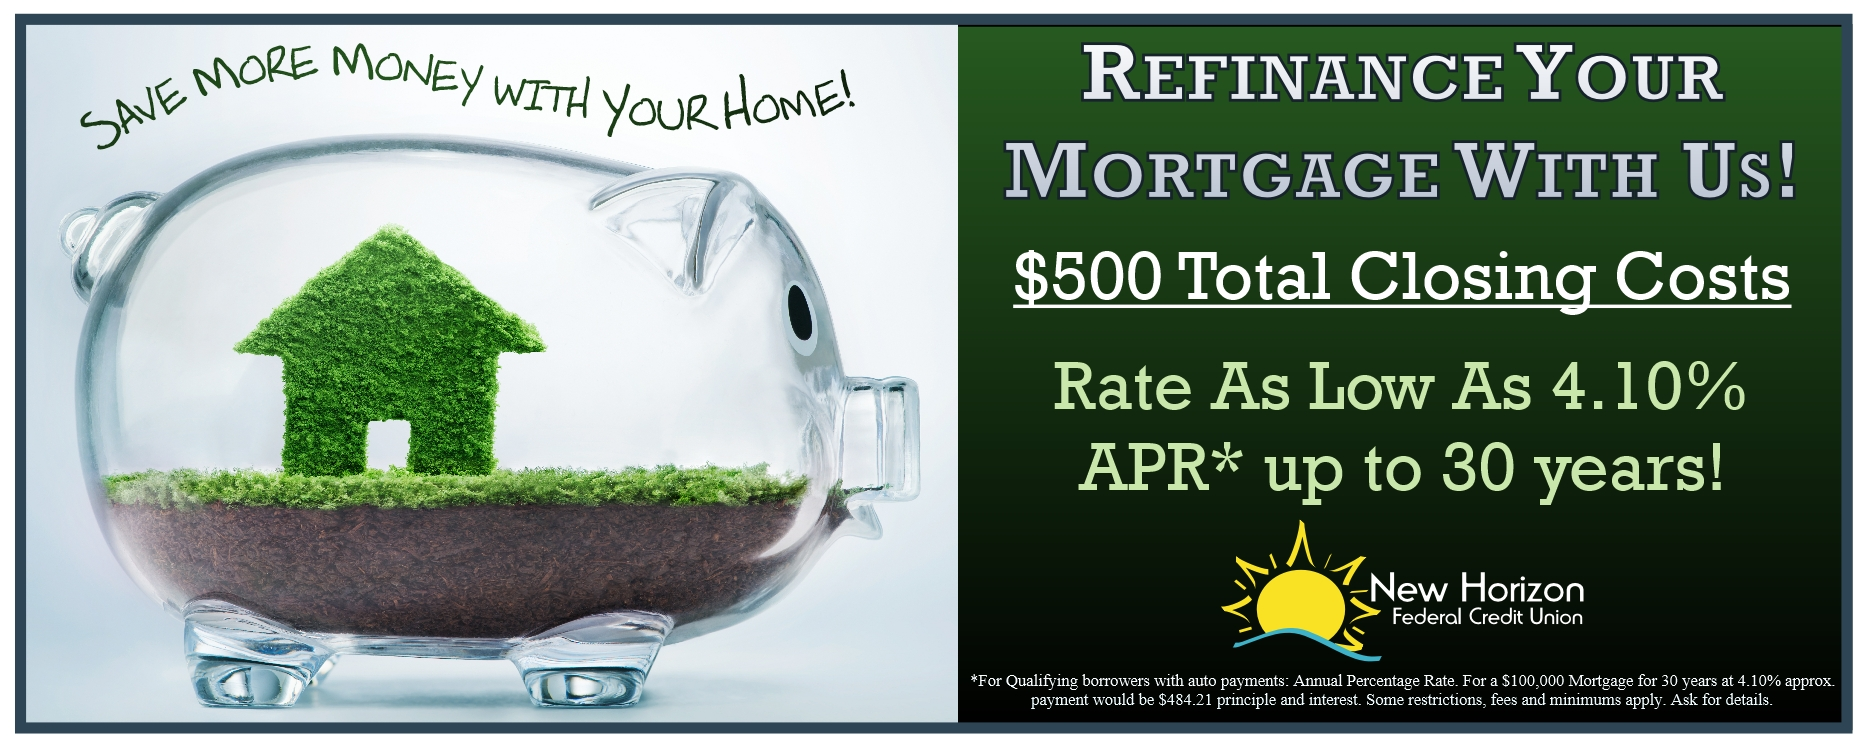 Refinance Your Mortgage With Us!